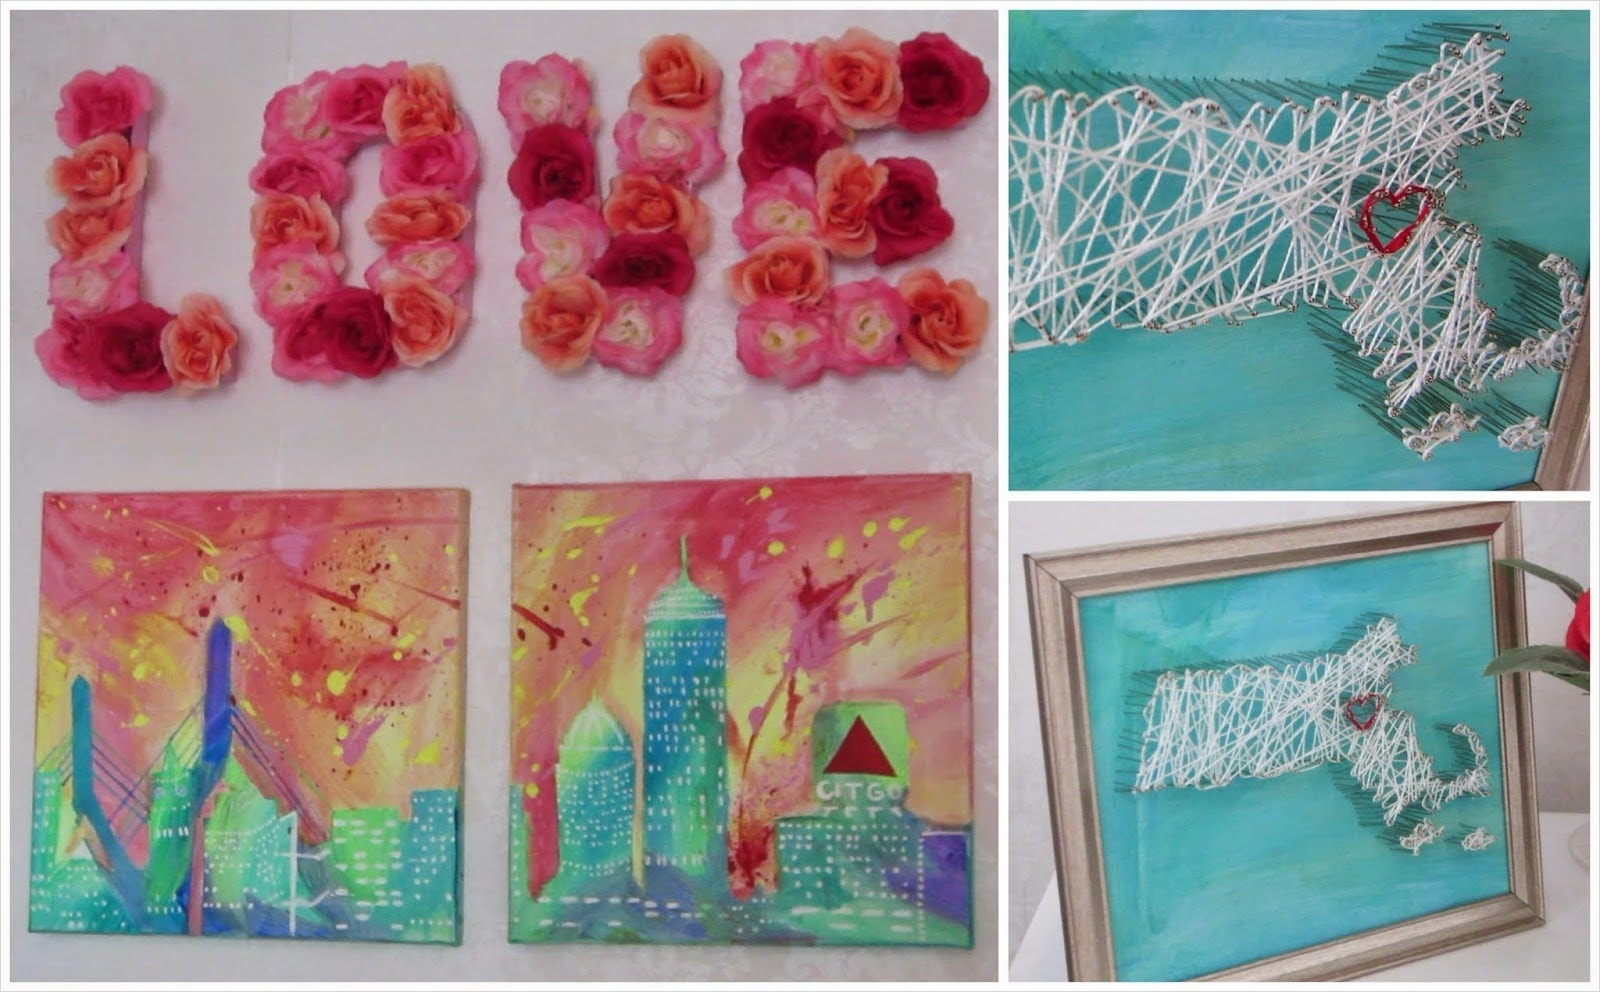 Craft Room Wall Decor 93 Interesting Wall Decor In Various Style with Magnificent Easy Diy Art Red Rose Flowers Also 3